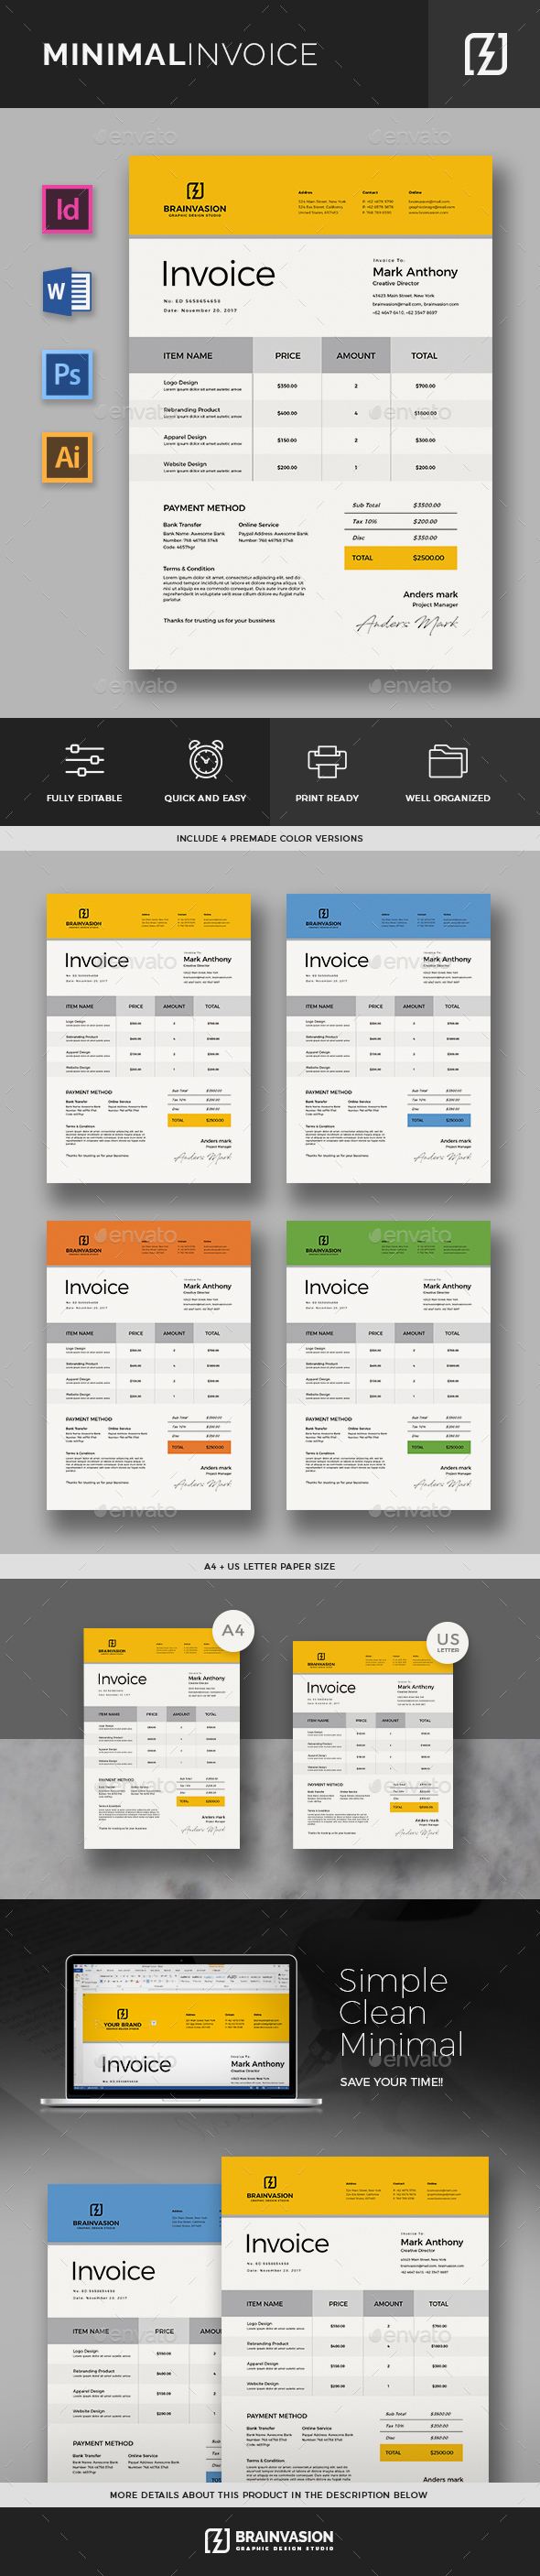 Minimal Invoice Template - Proposals & Invoices Stationery